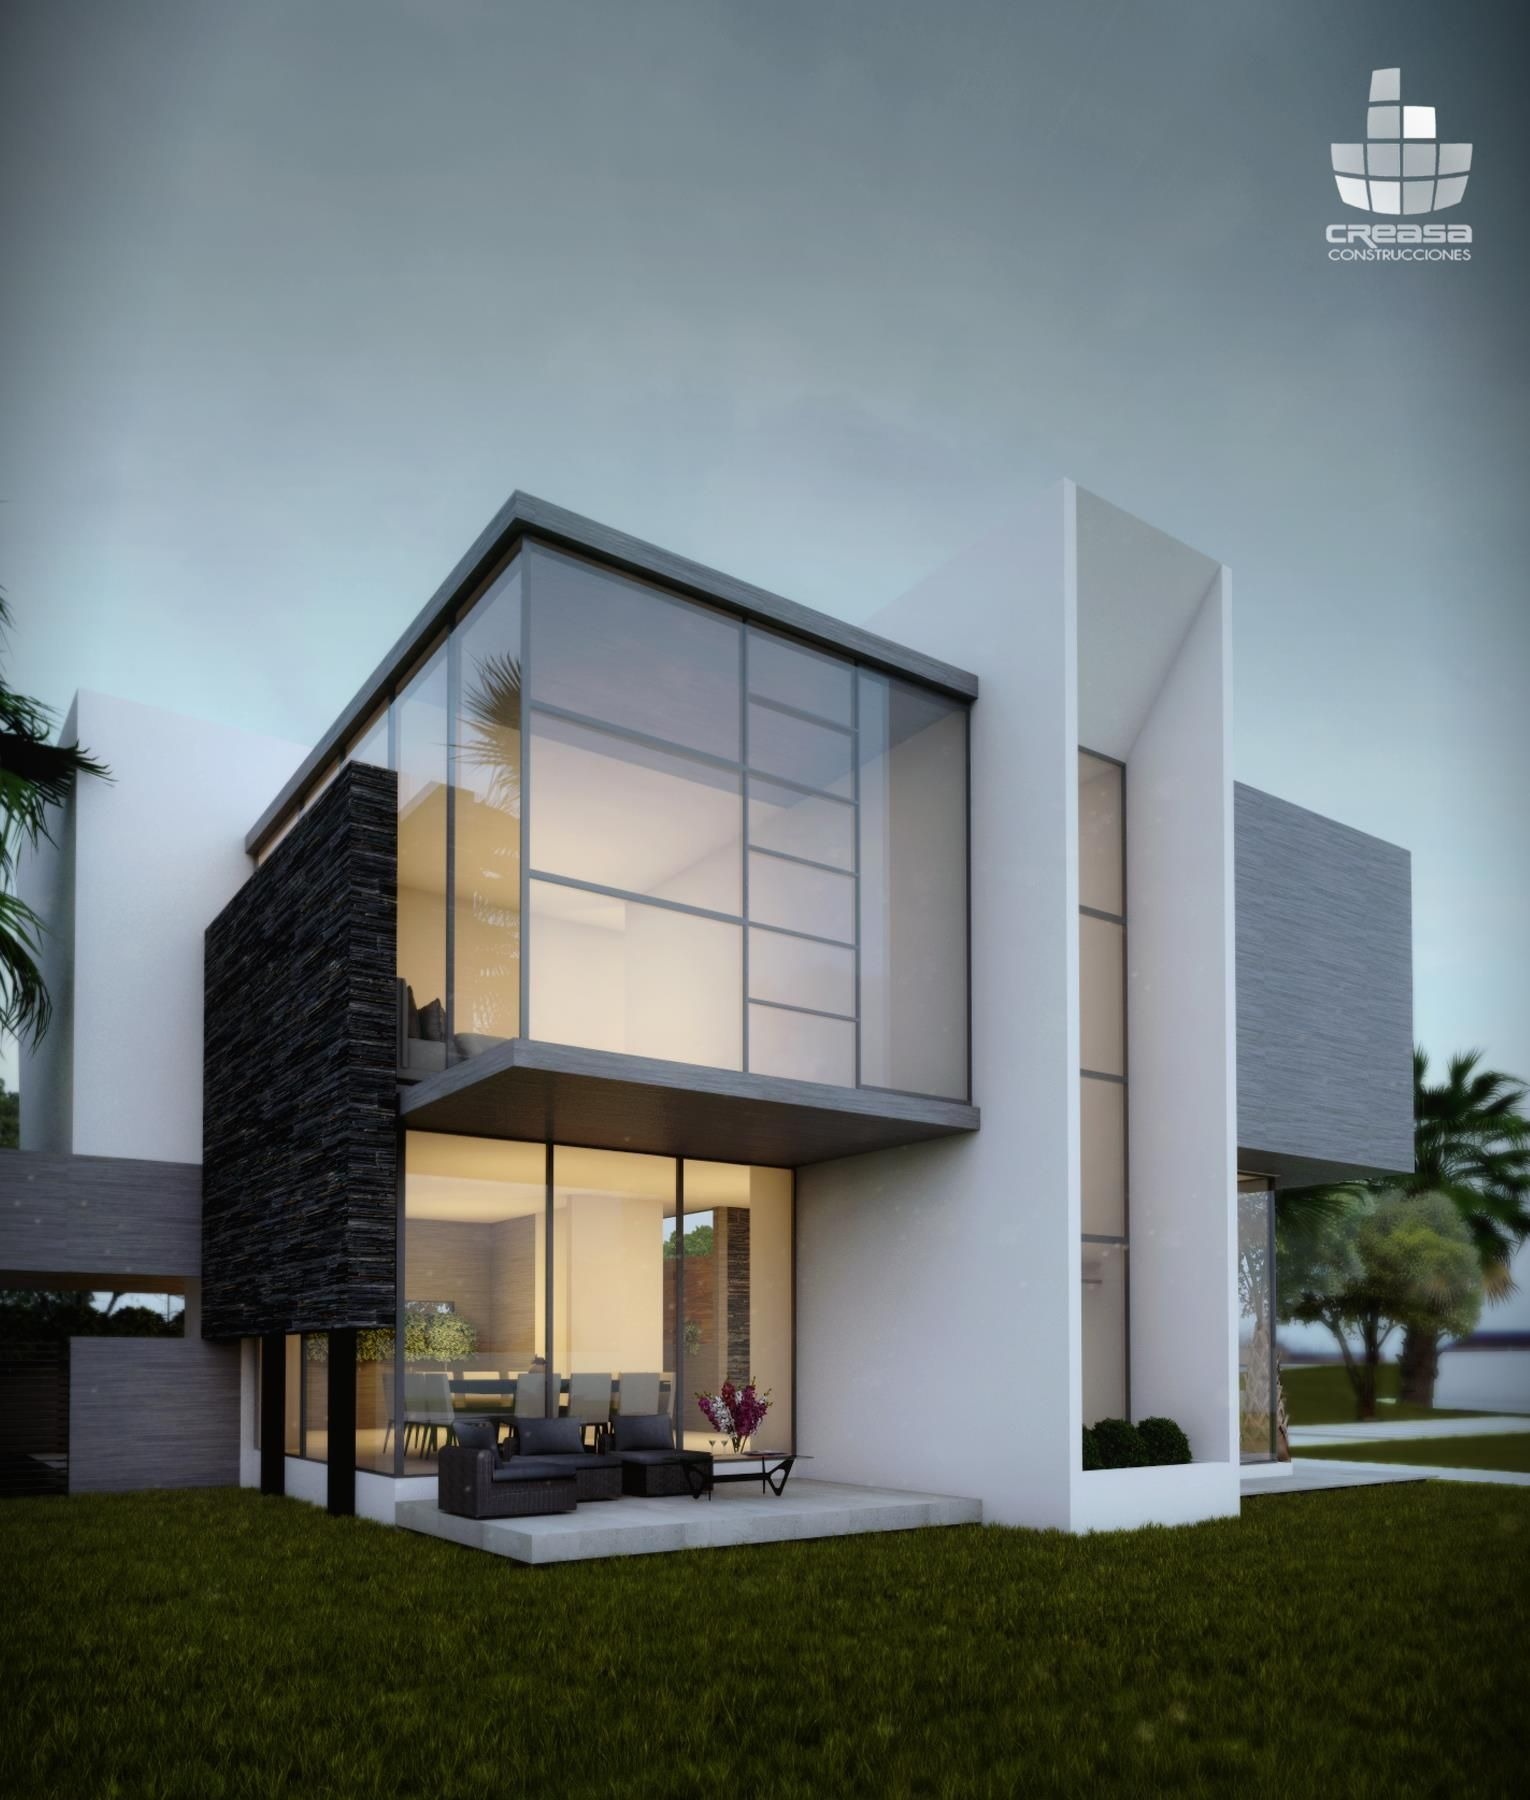 Creasa modern architecture pinterest villas house for Architecture orientale